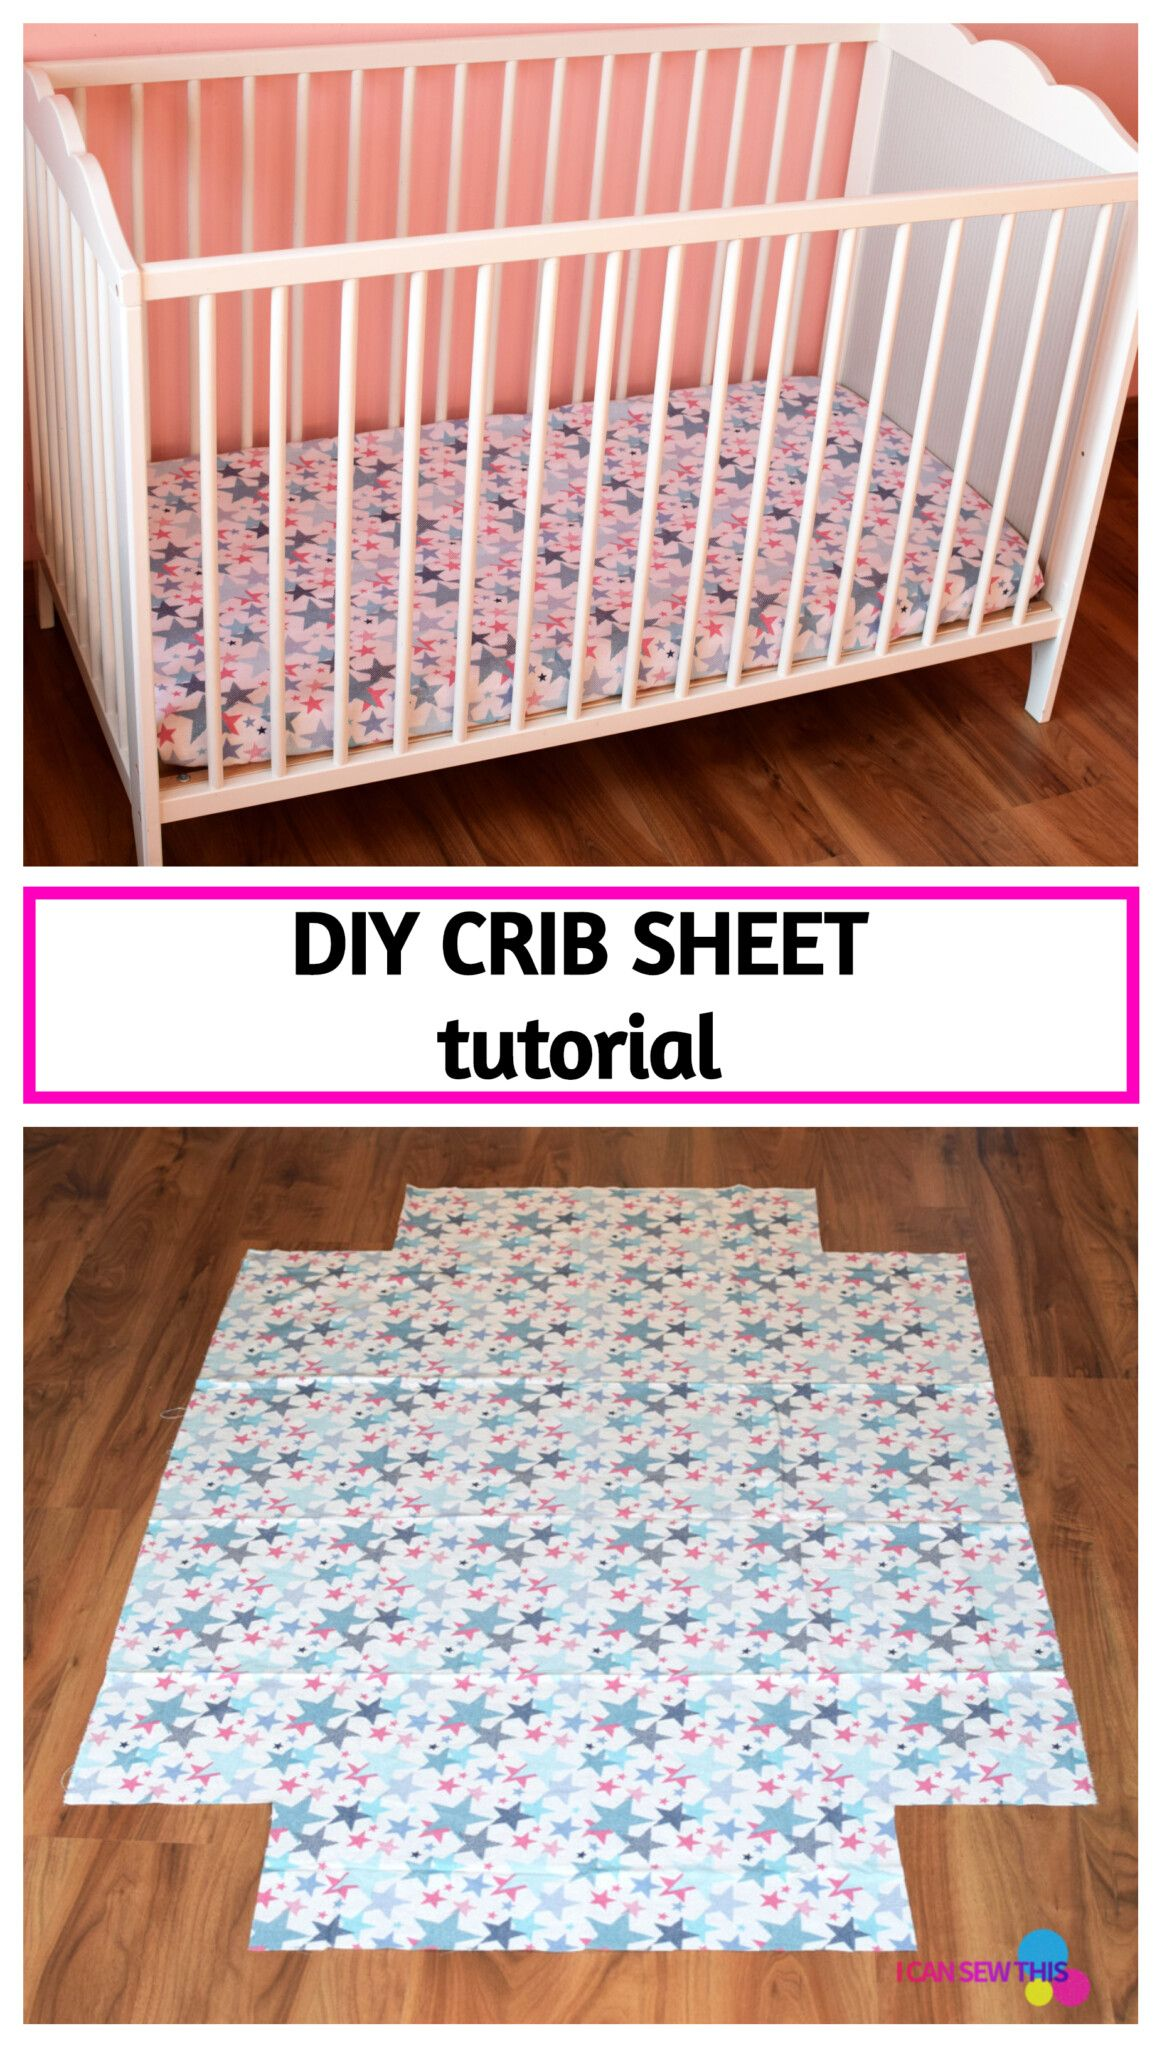 How To Make A Crib Sheet An Easy Step By Step Tutorial In 2020